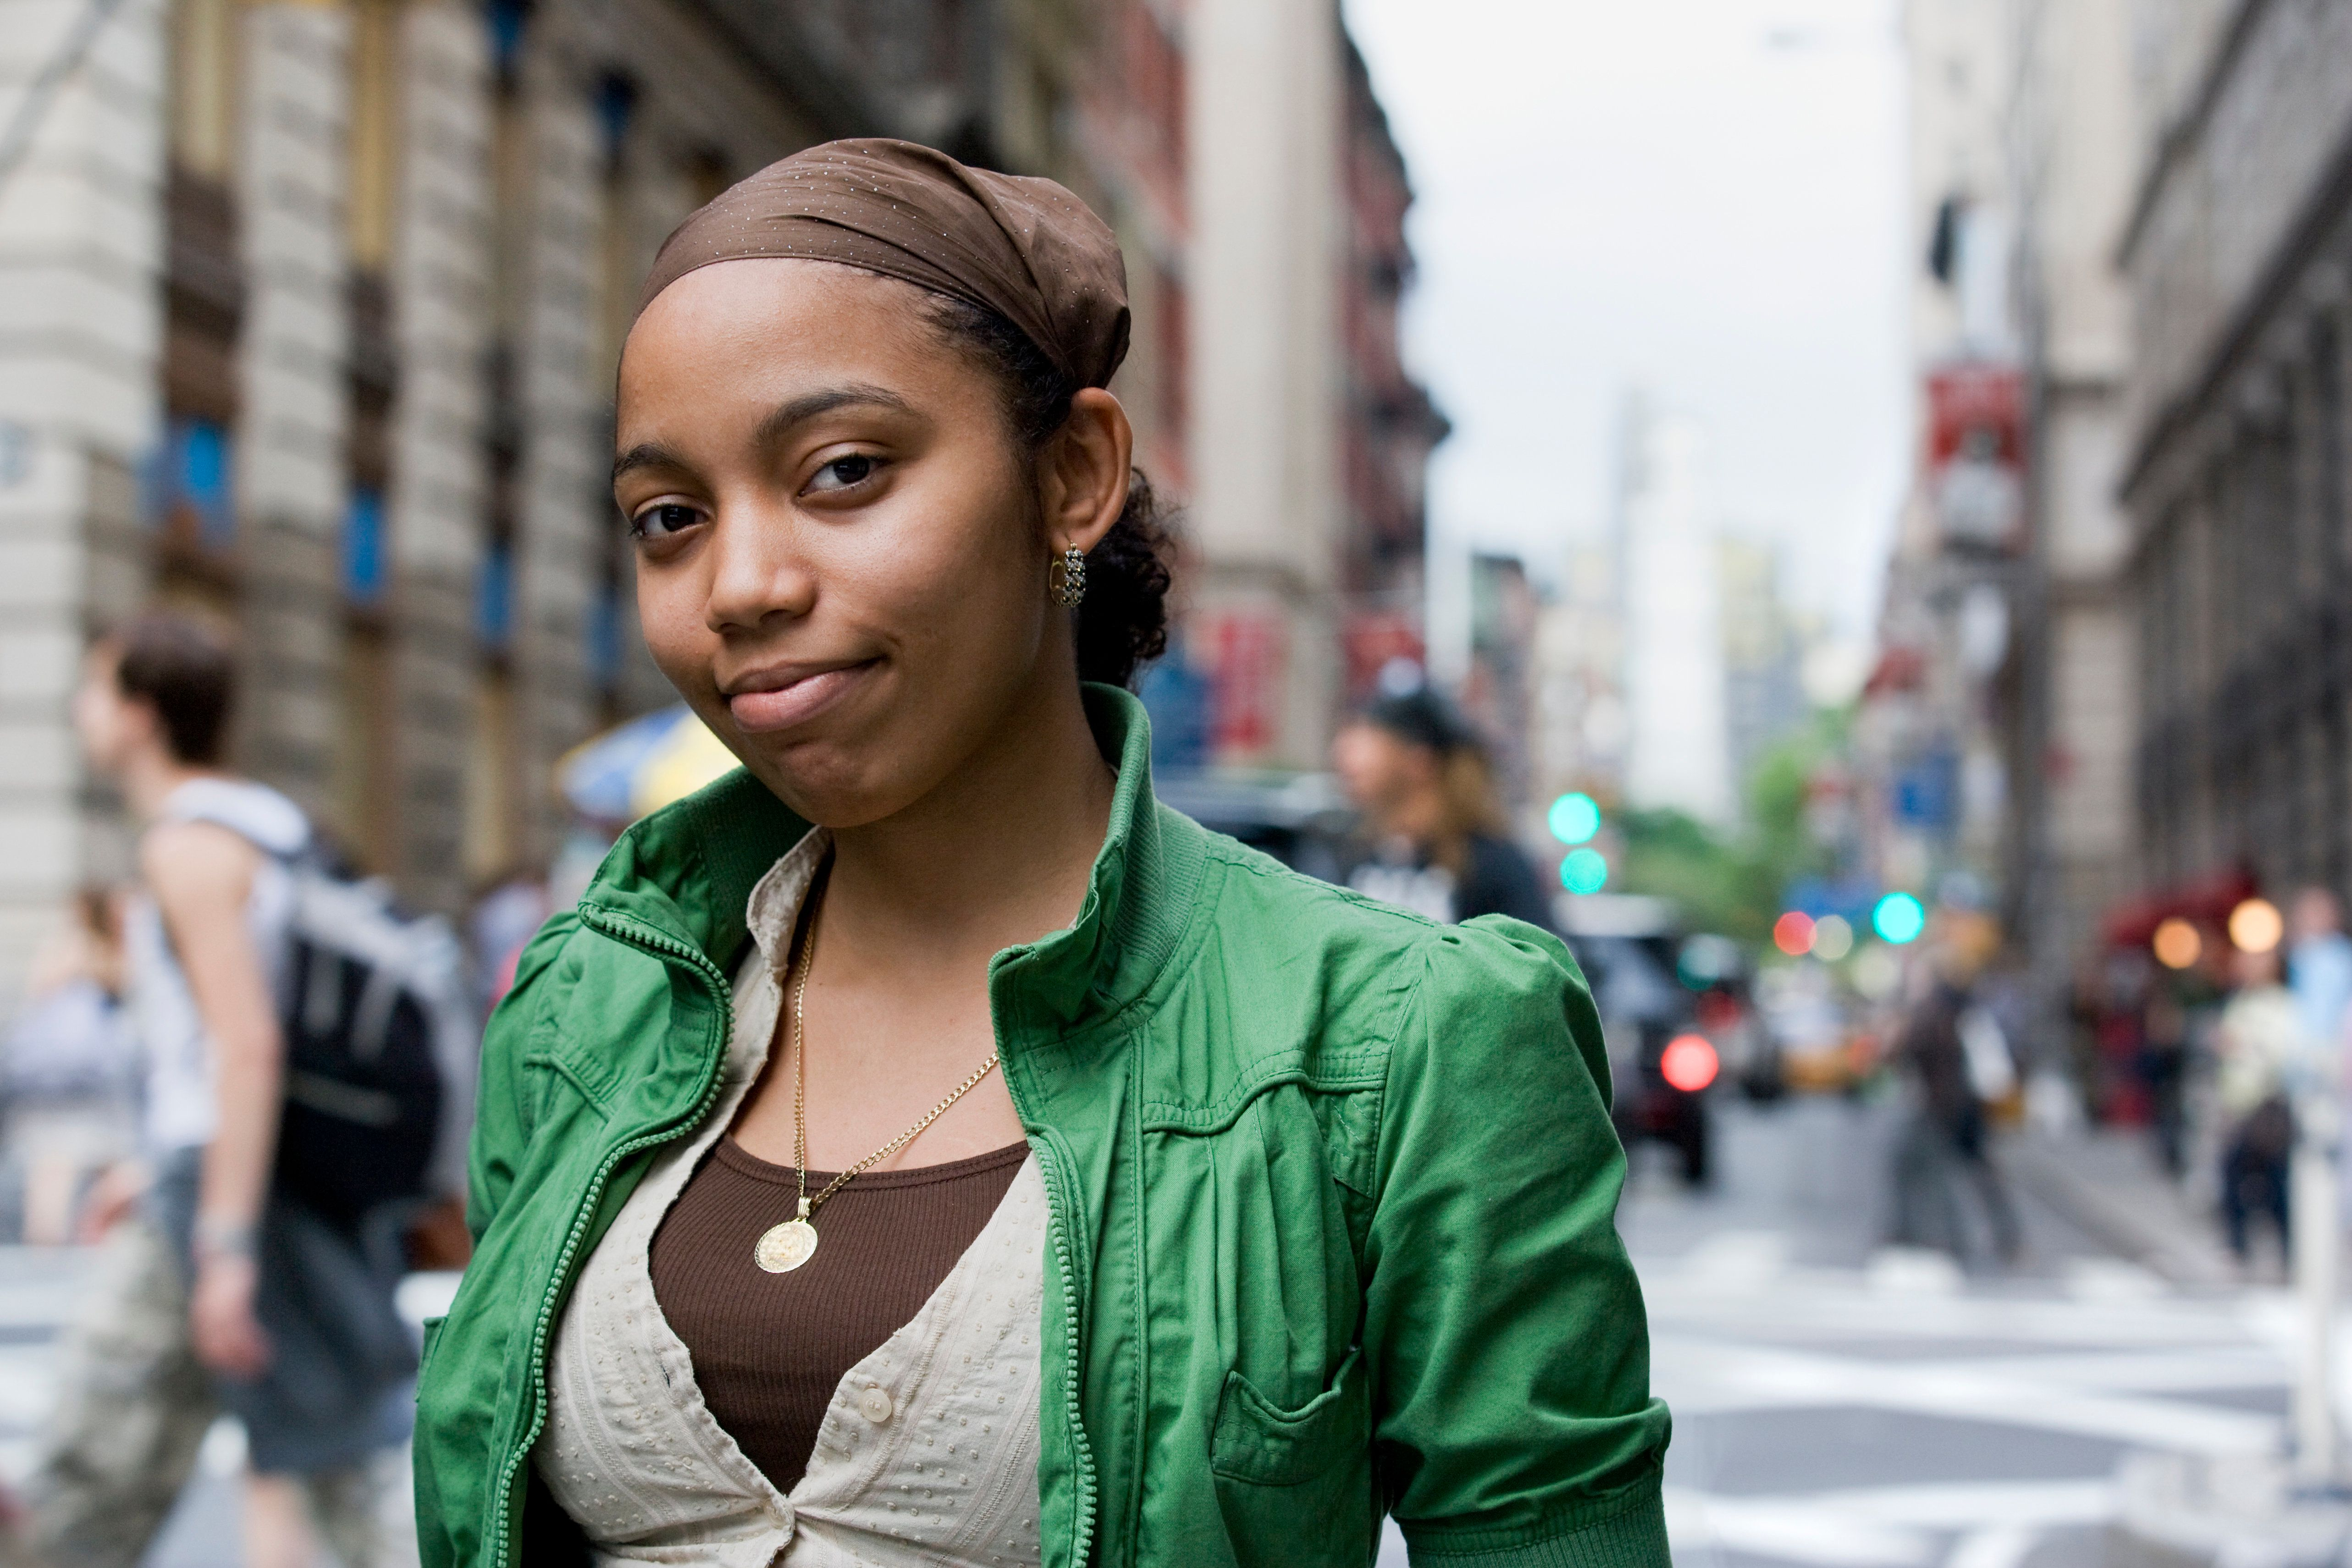 Portrait of young Hispanic woman in downtown city, New York City